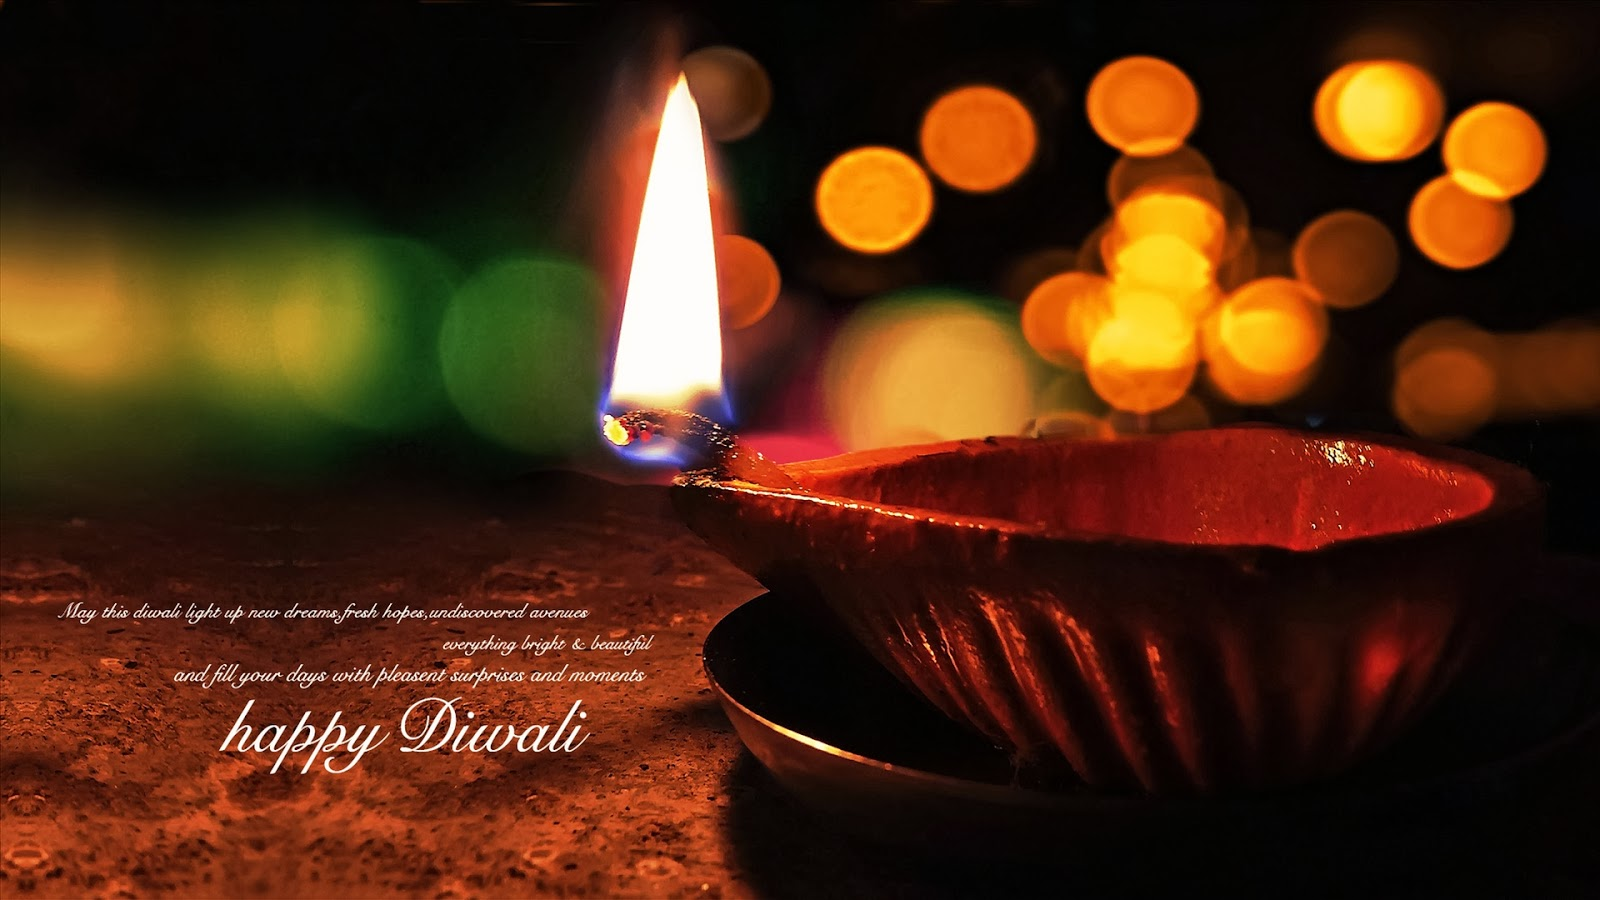 happy diwali 2013 diwali wallpapers 2013 happy diwali wishes happy new year 2014 wallpapers happy new year 2014 greetings new year 2014 images